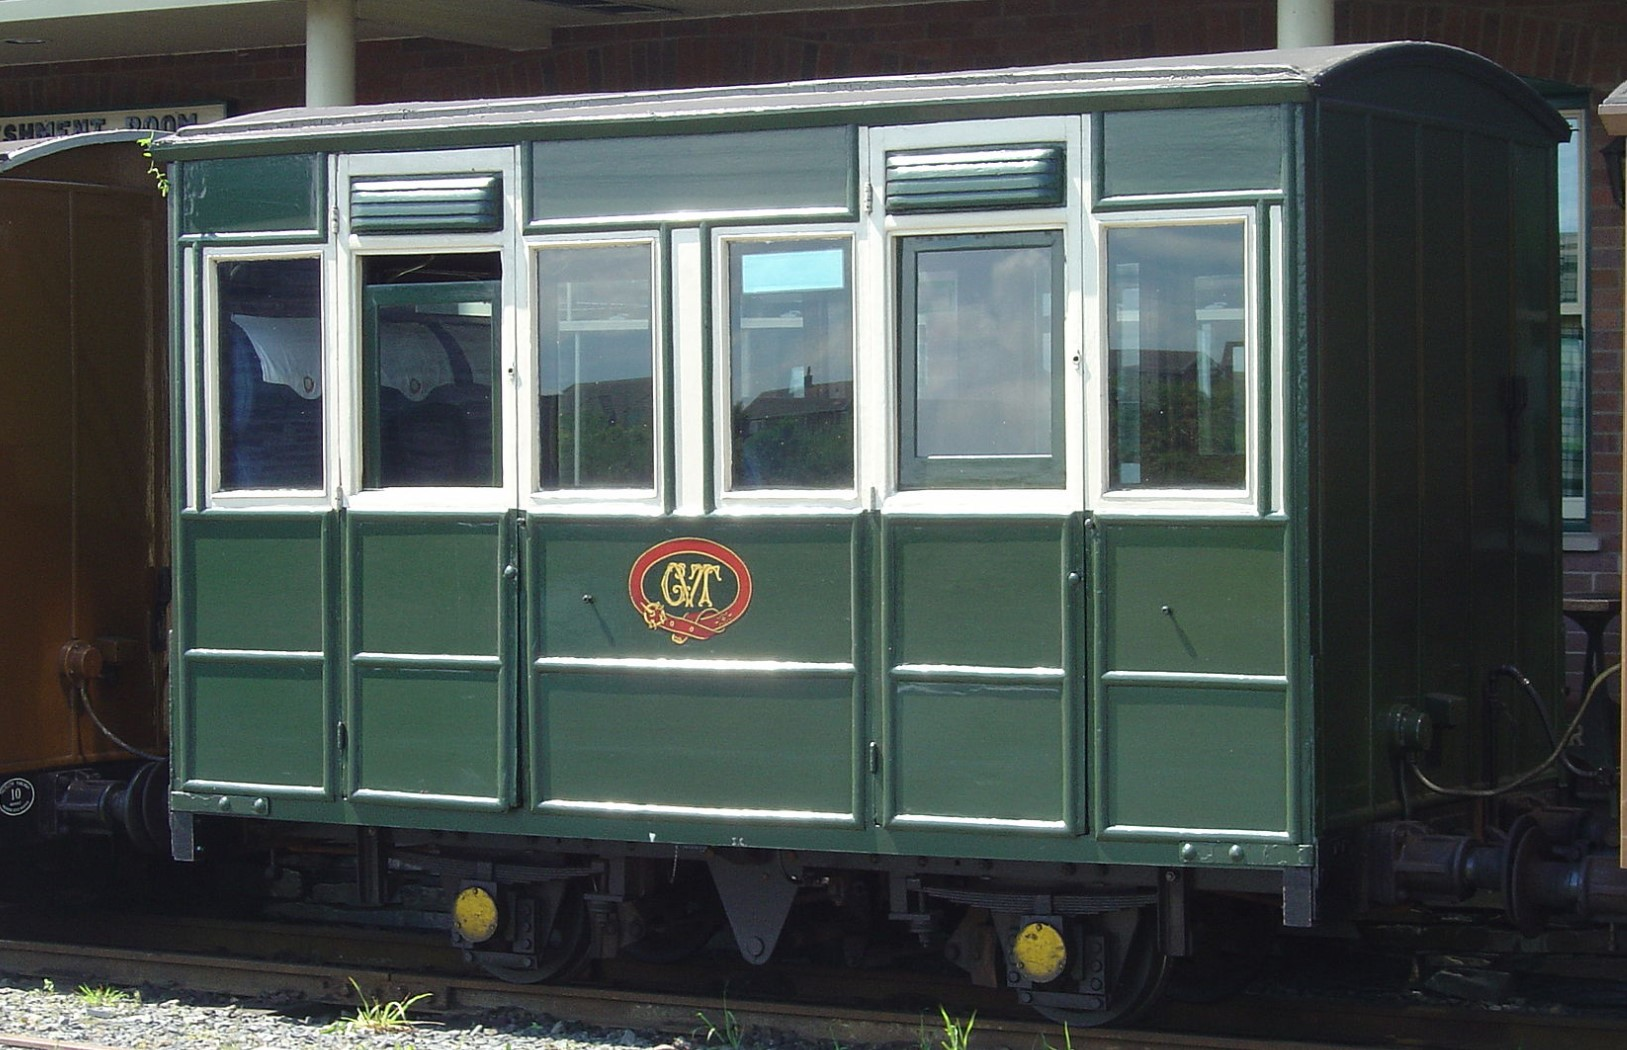 No.14 at the Talyllyn Railway in June 2008. ©Public Domain